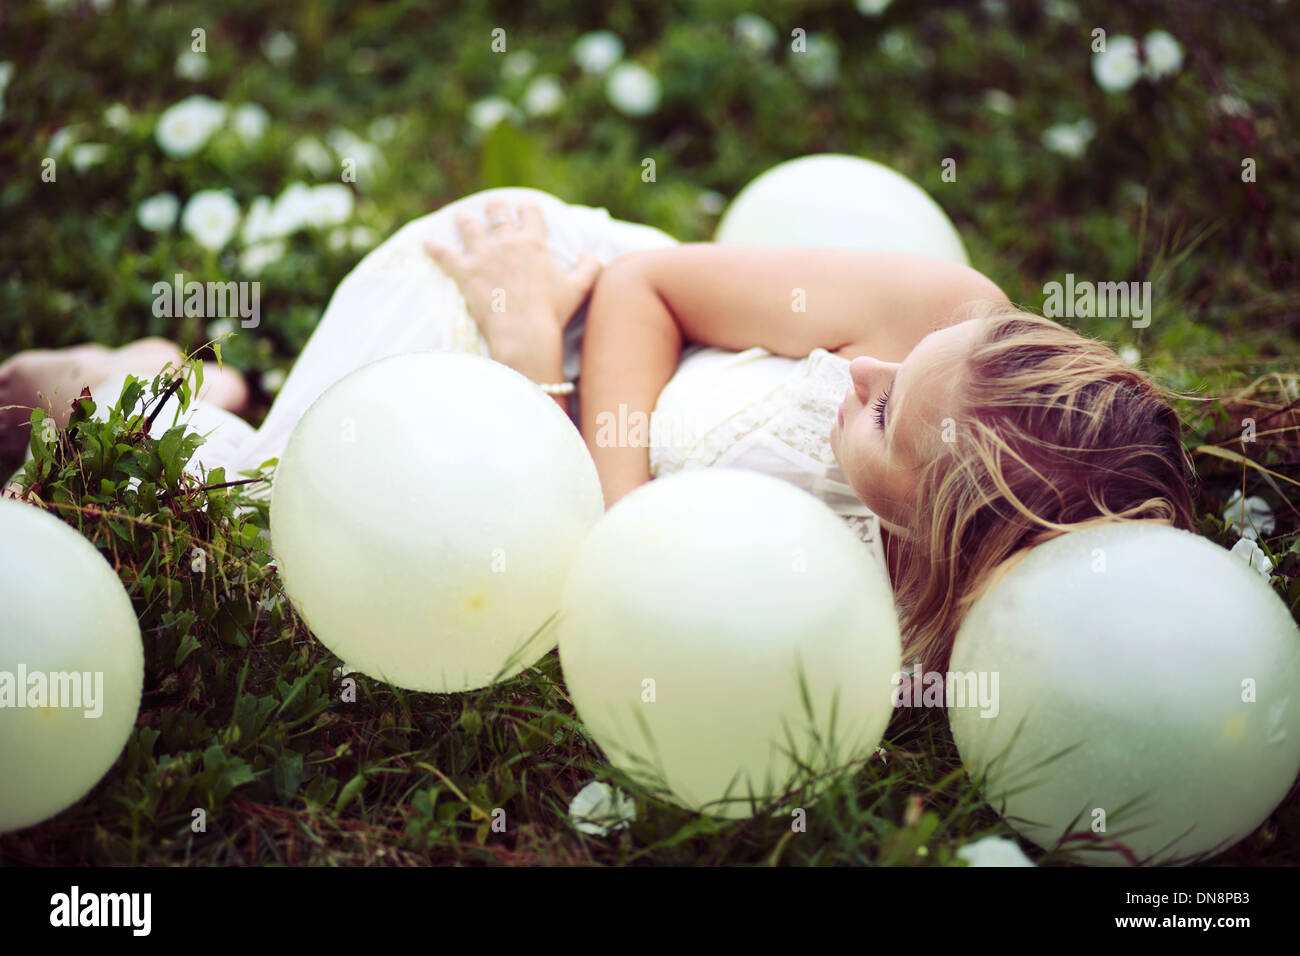 Young woman lying on a meadow between balloons - Stock Image